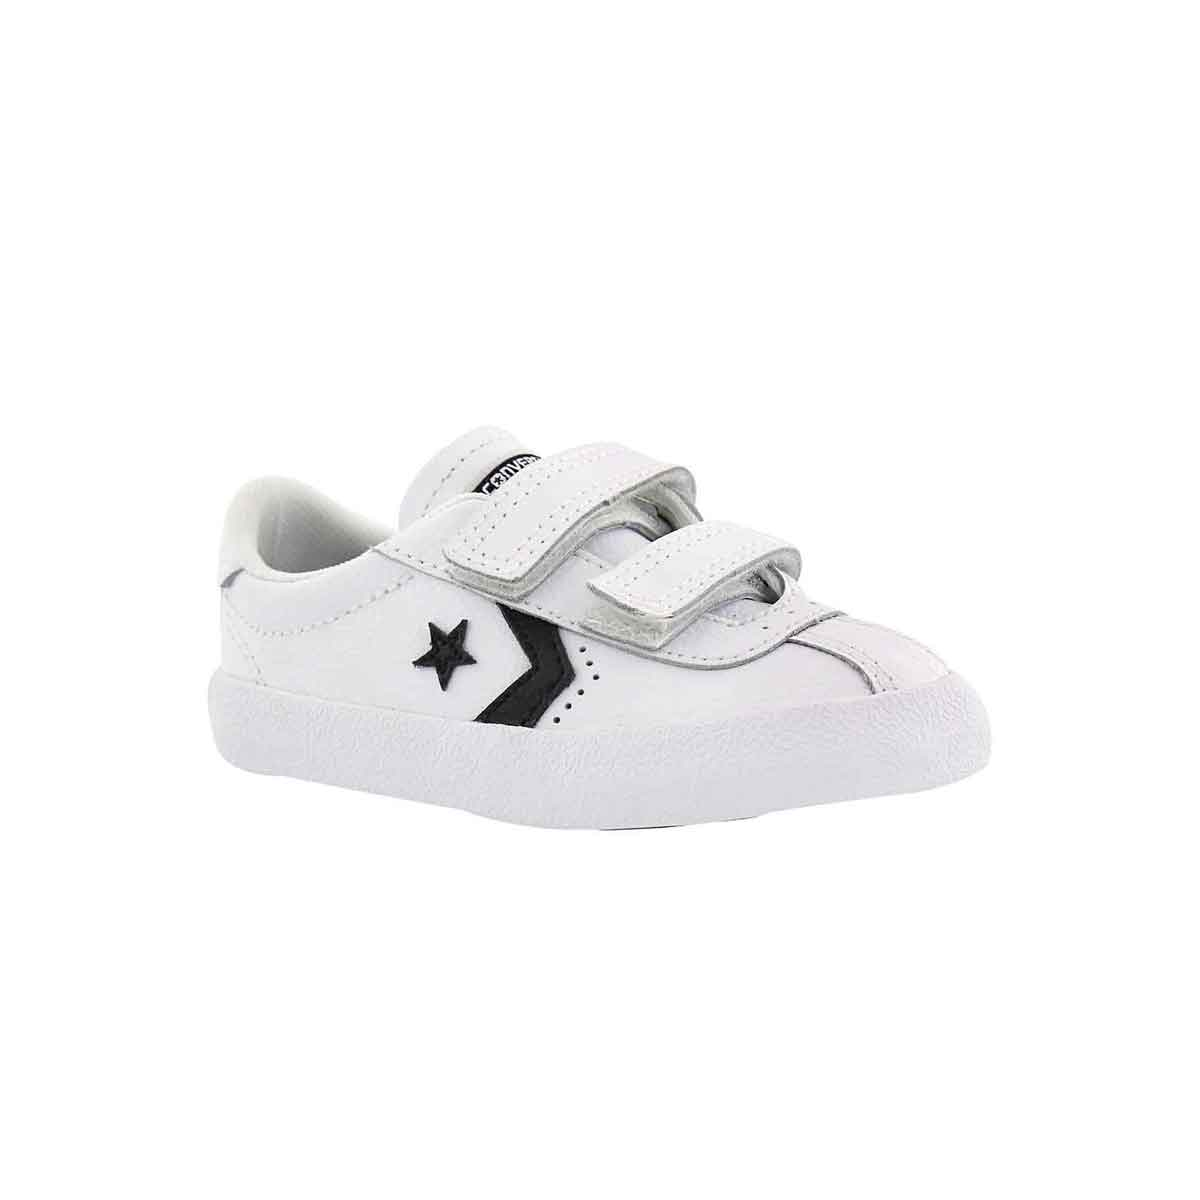 Infants' BREAKPOINT white/black leather sneakers